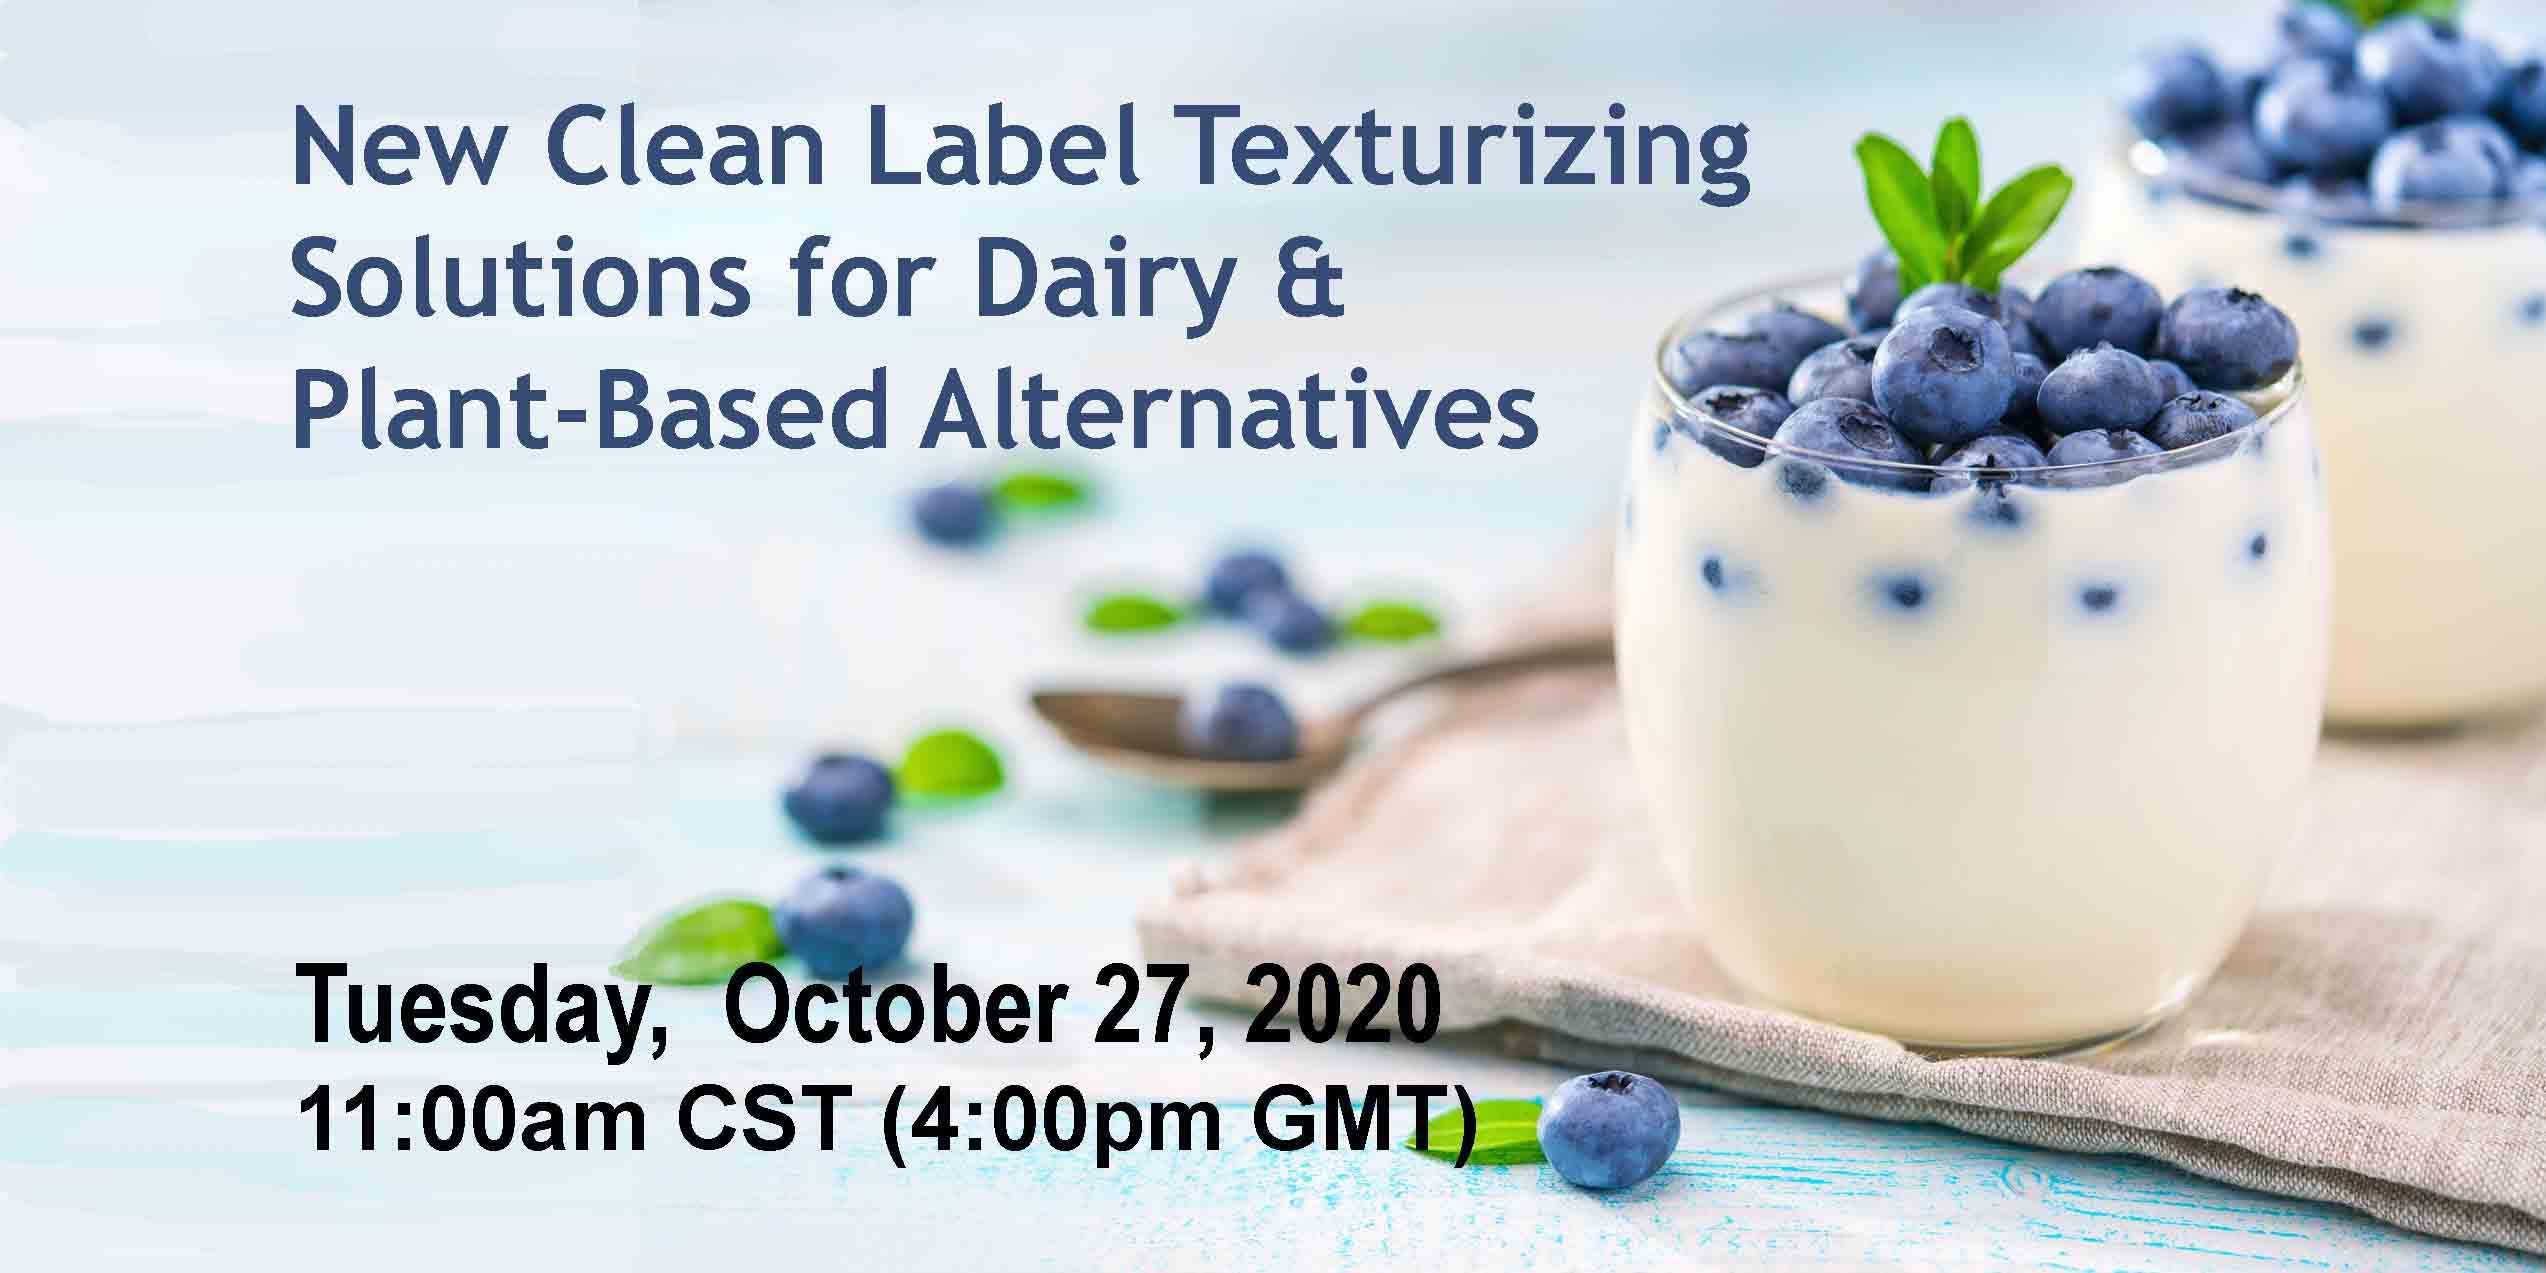 Avebe Texturizing Solutions for Plant-Based Dairy Webinar